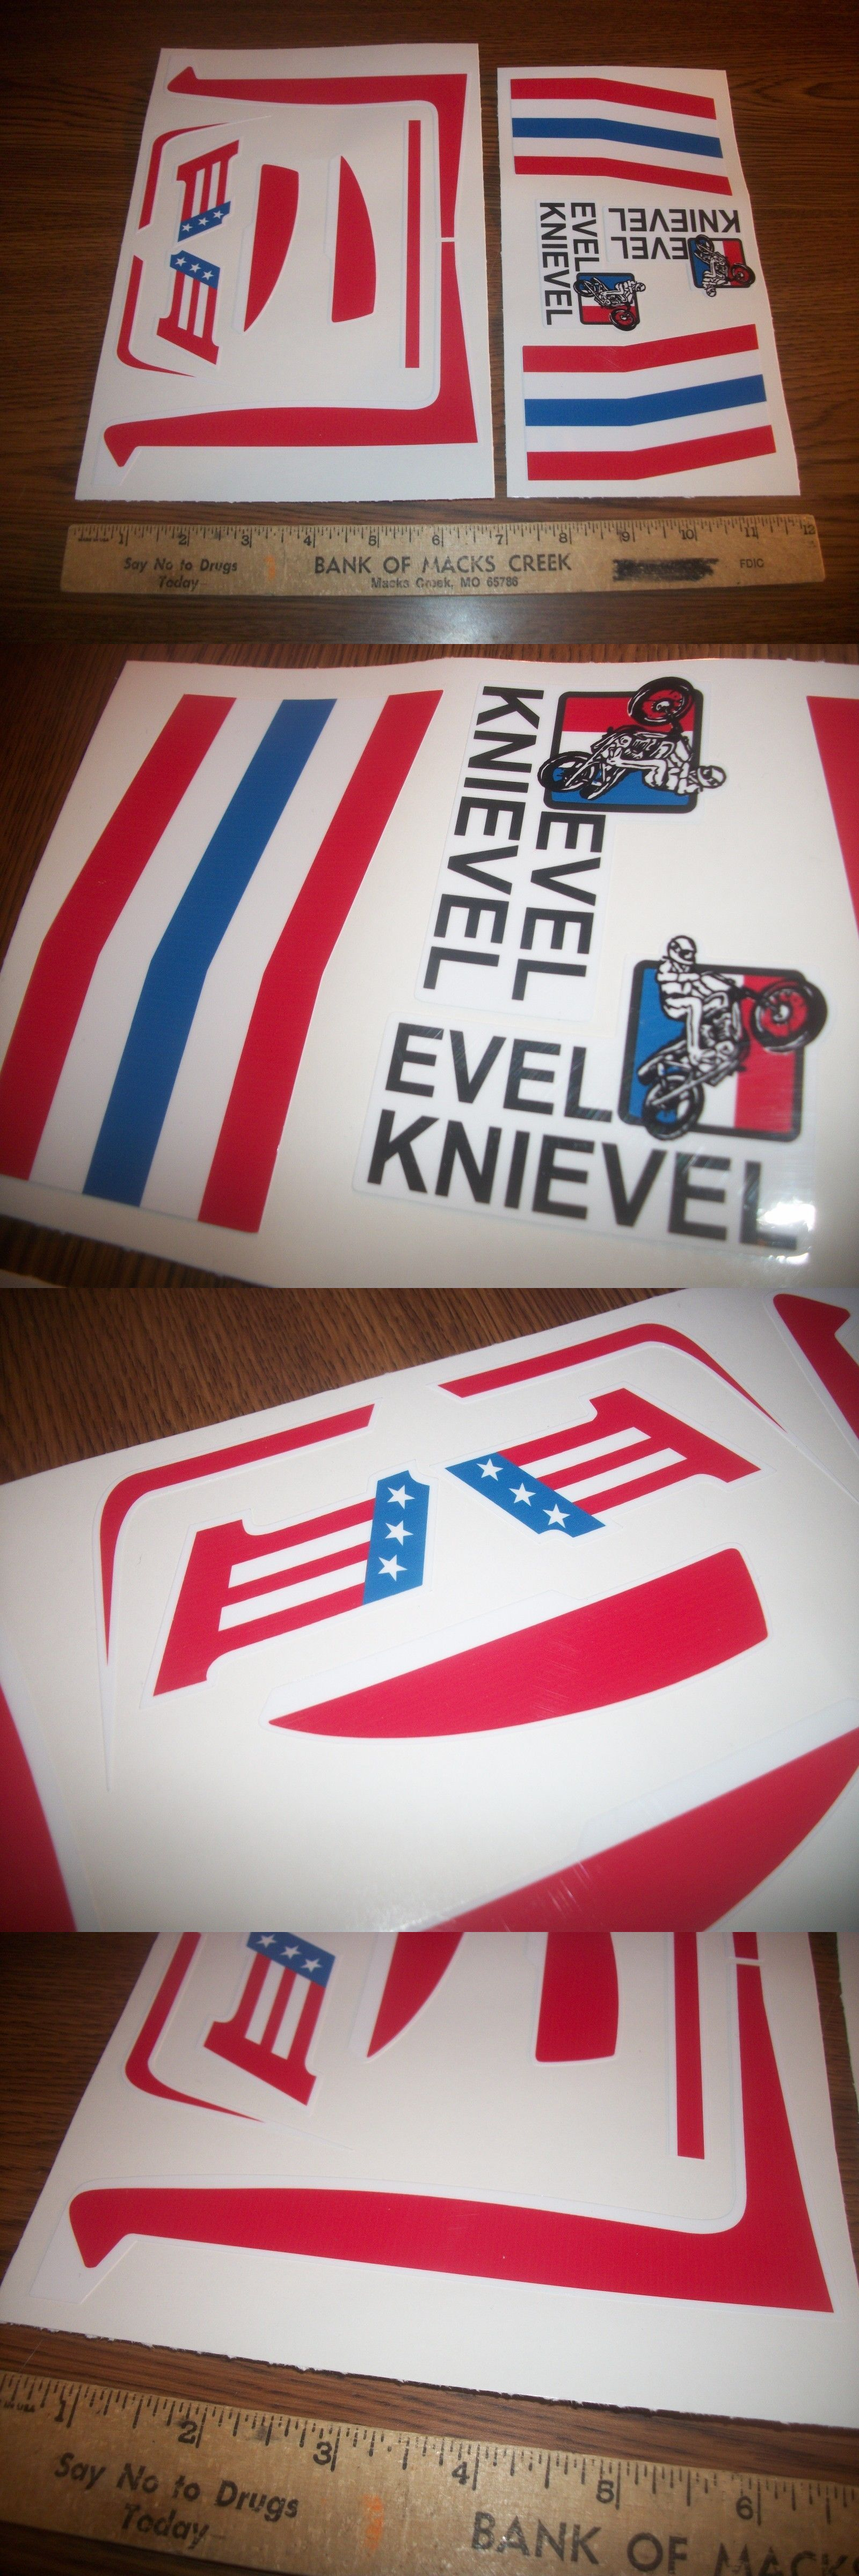 Character 723 evel canyon rig stickers buy it now only 12 on